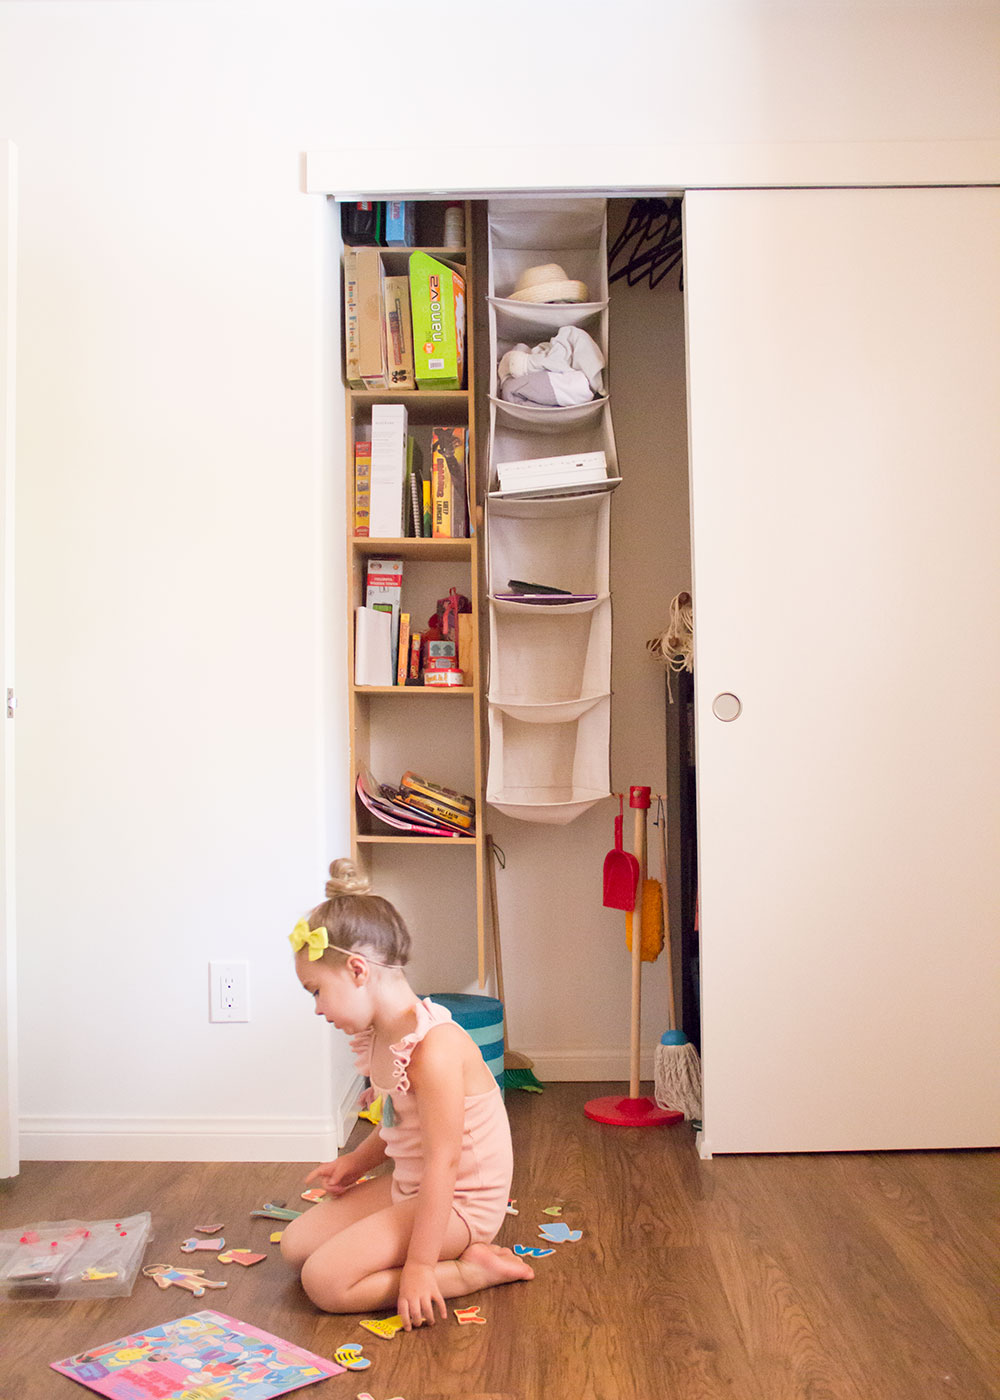 our current playroom closet. it needs help! | thelovedesignedlife.com #californiaclosets #organization